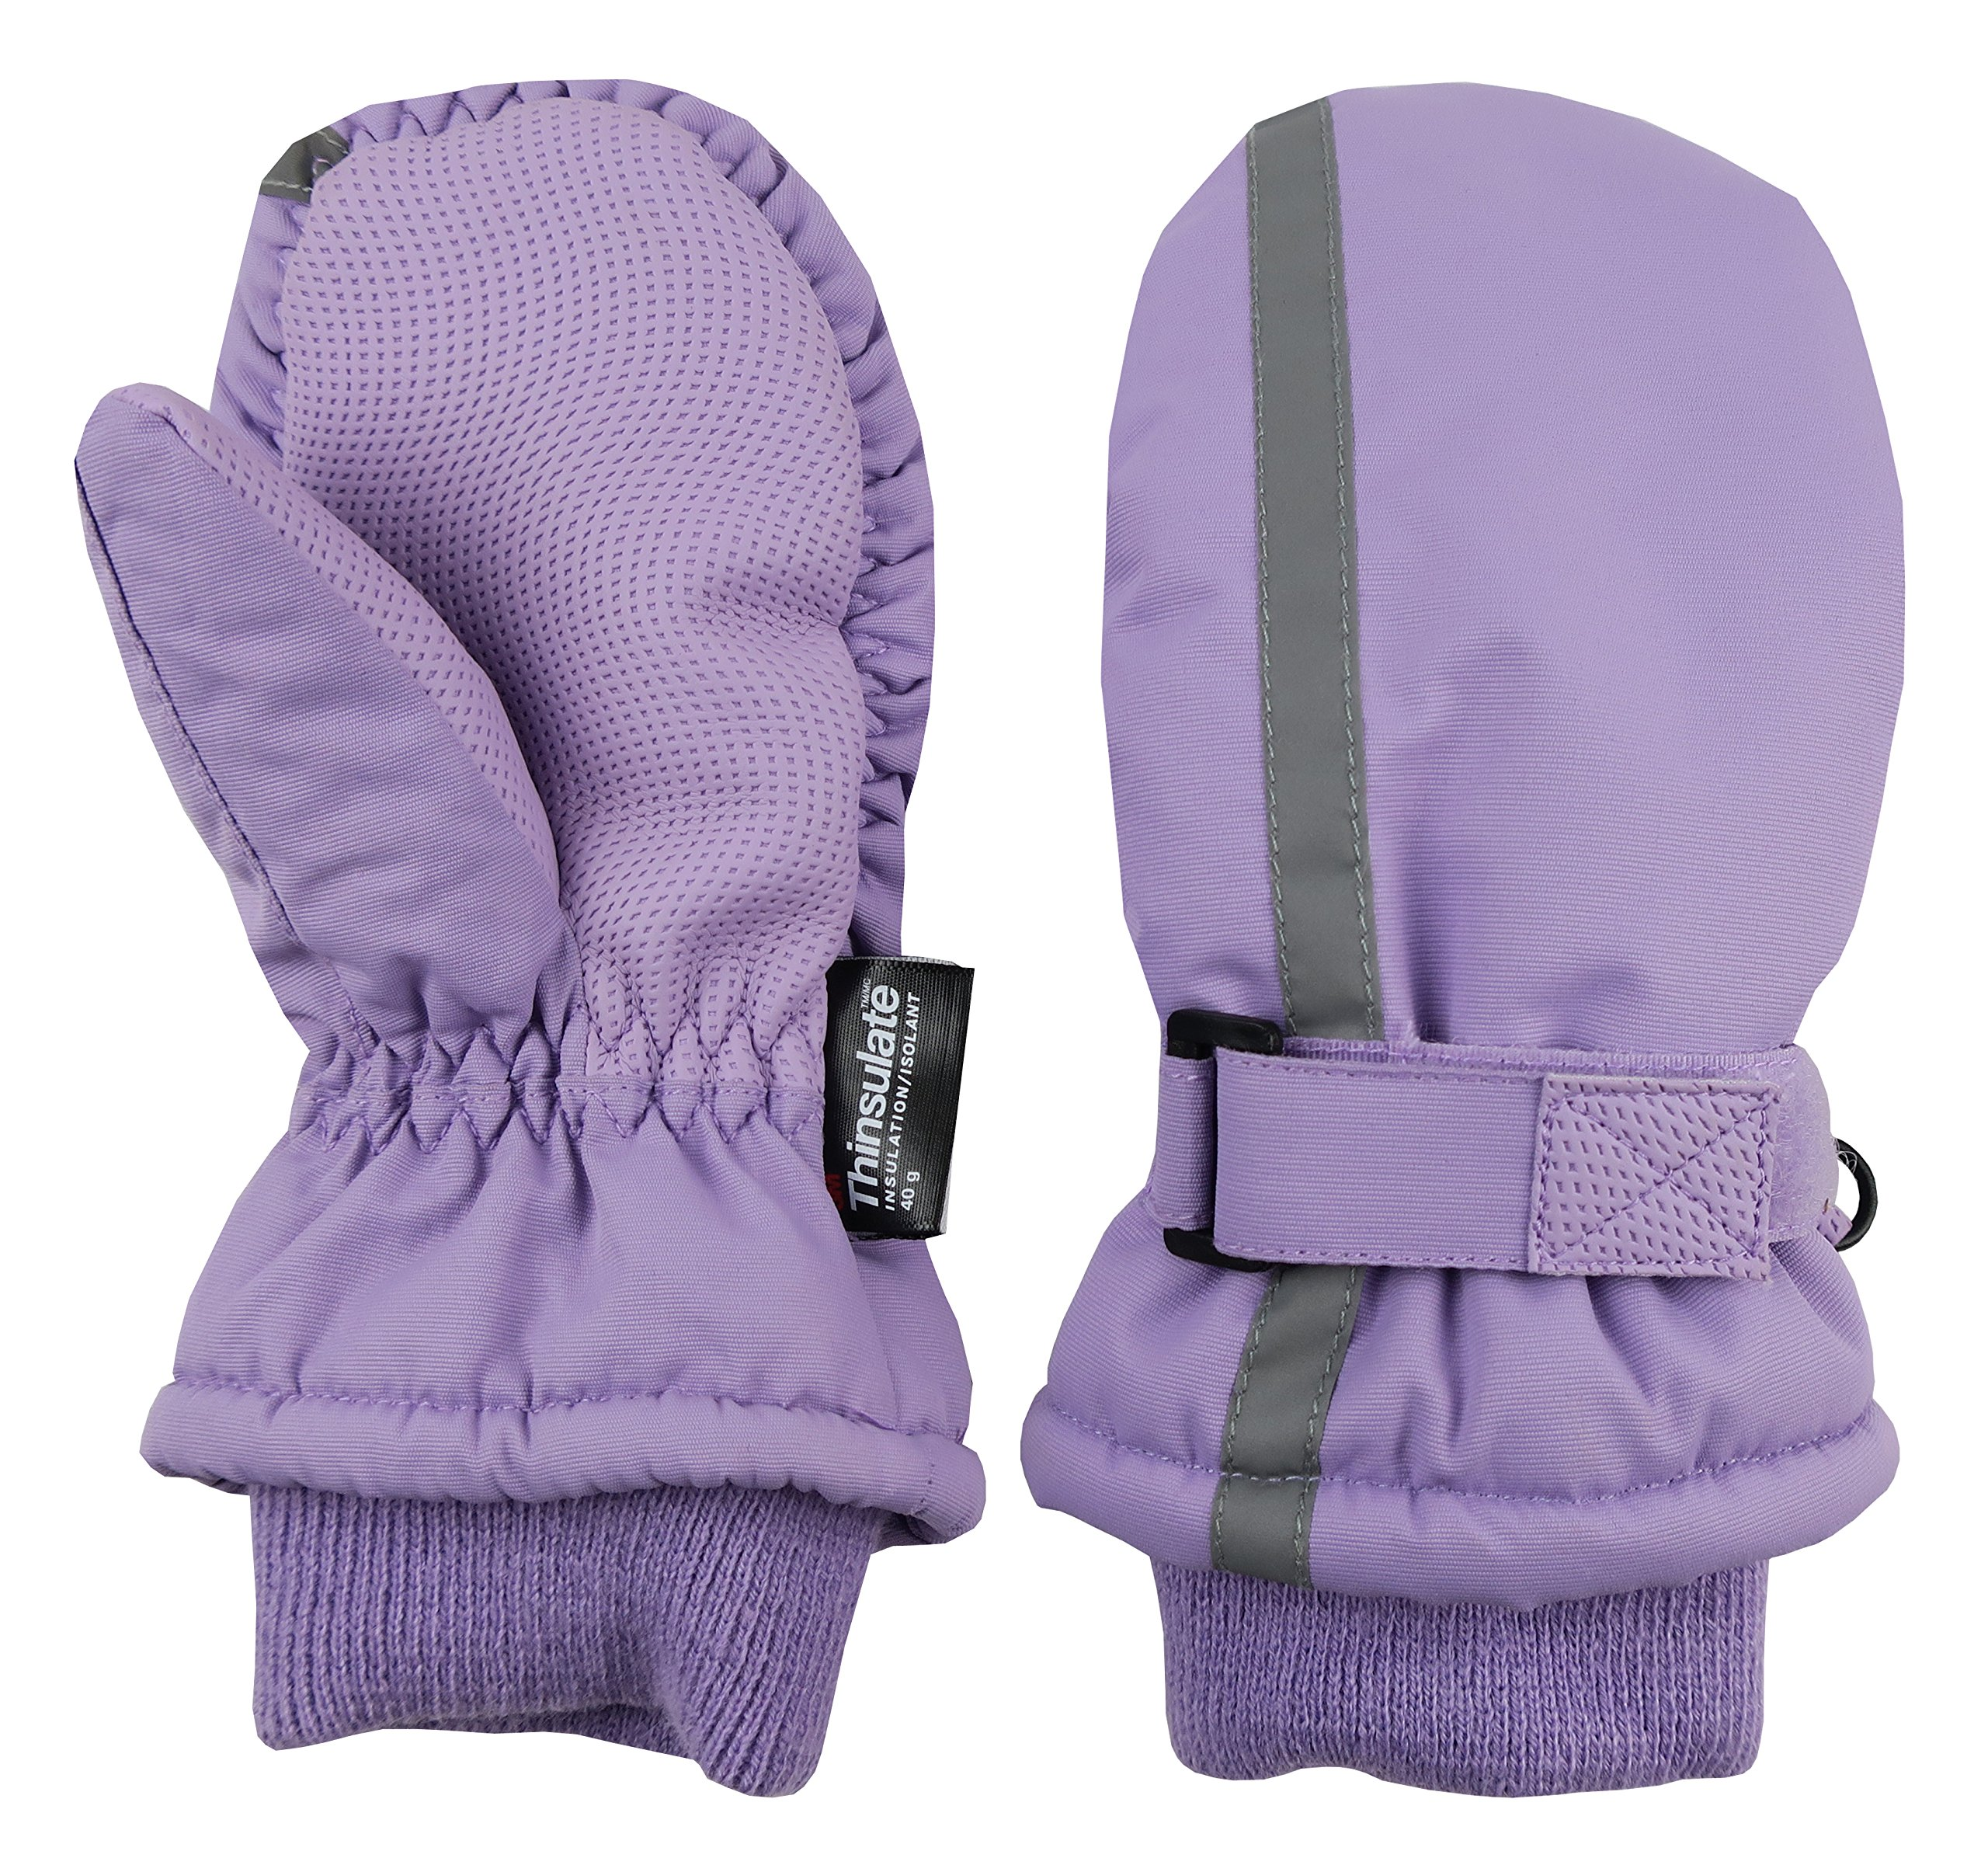 N'Ice Caps Kids Thinsulate Waterproof Reflector Winter Snow Ski Mittens (Lavender, 2-3 Years)